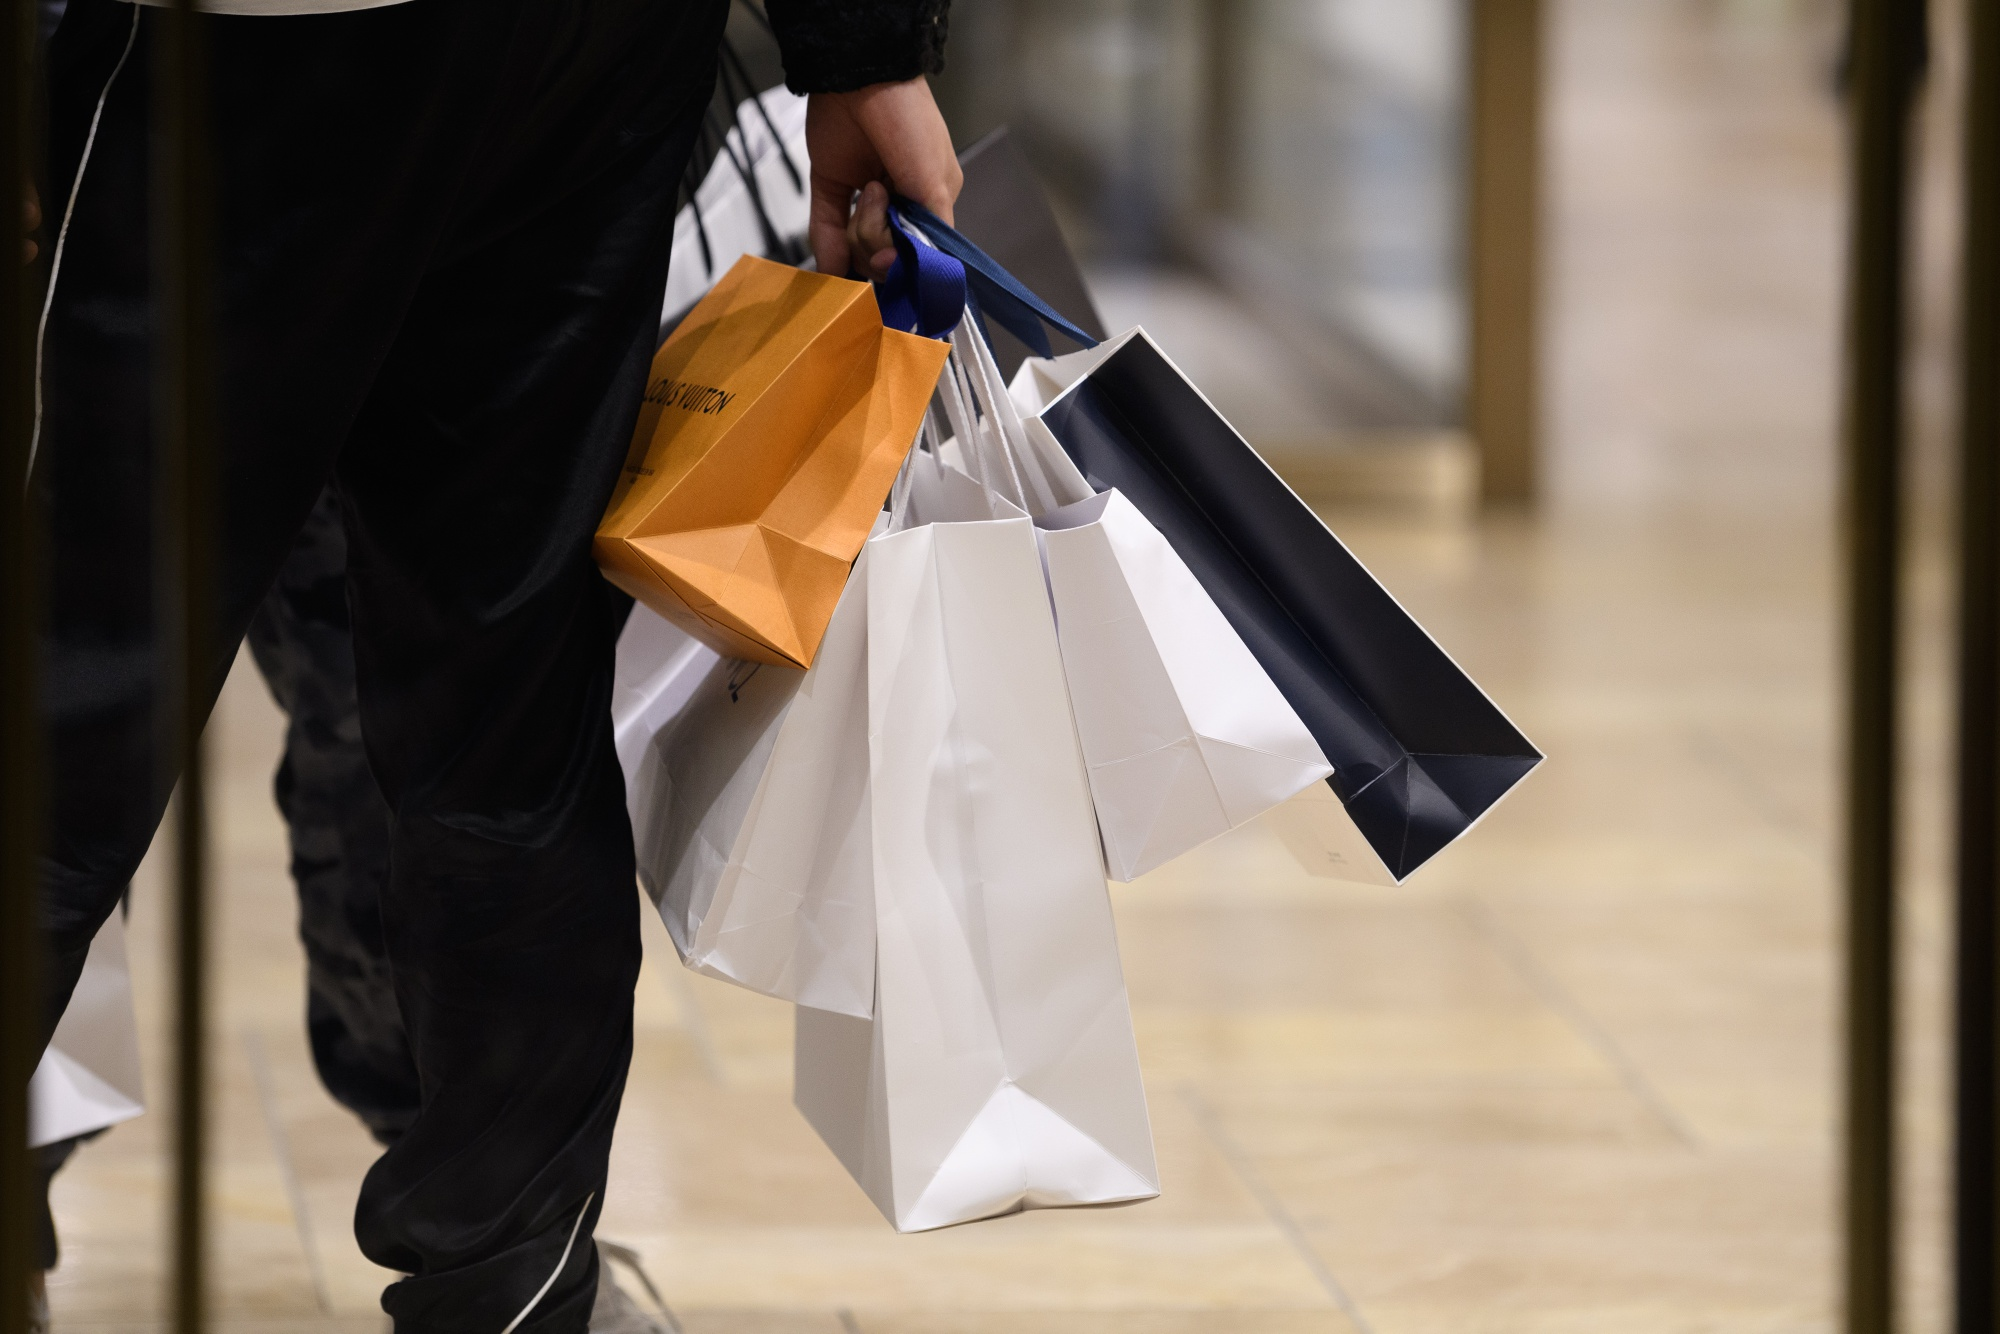 Japanese Consumers Help Prop Up Economy During Export Slump - Bloomberg